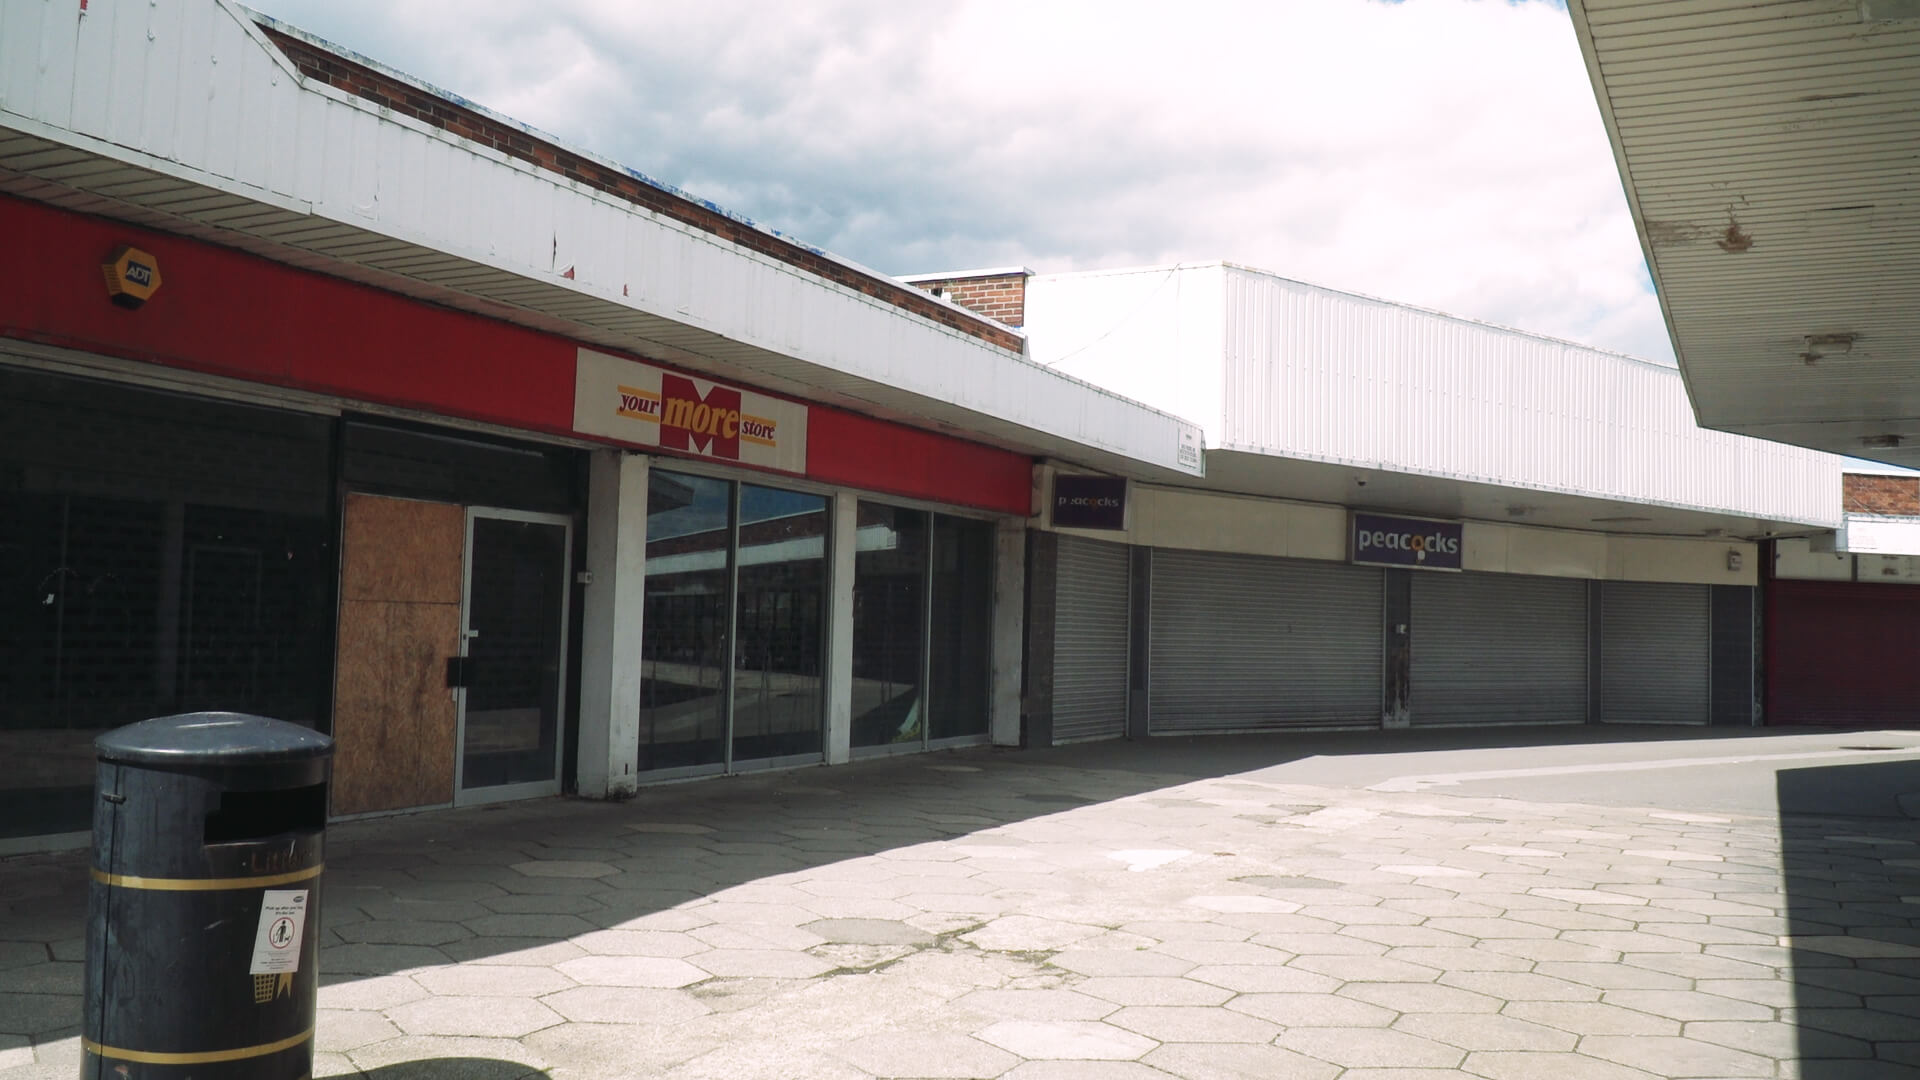 Current picture of Festival walk. It includes the 2 empty shops that were previously occupied by More store and Peacocks